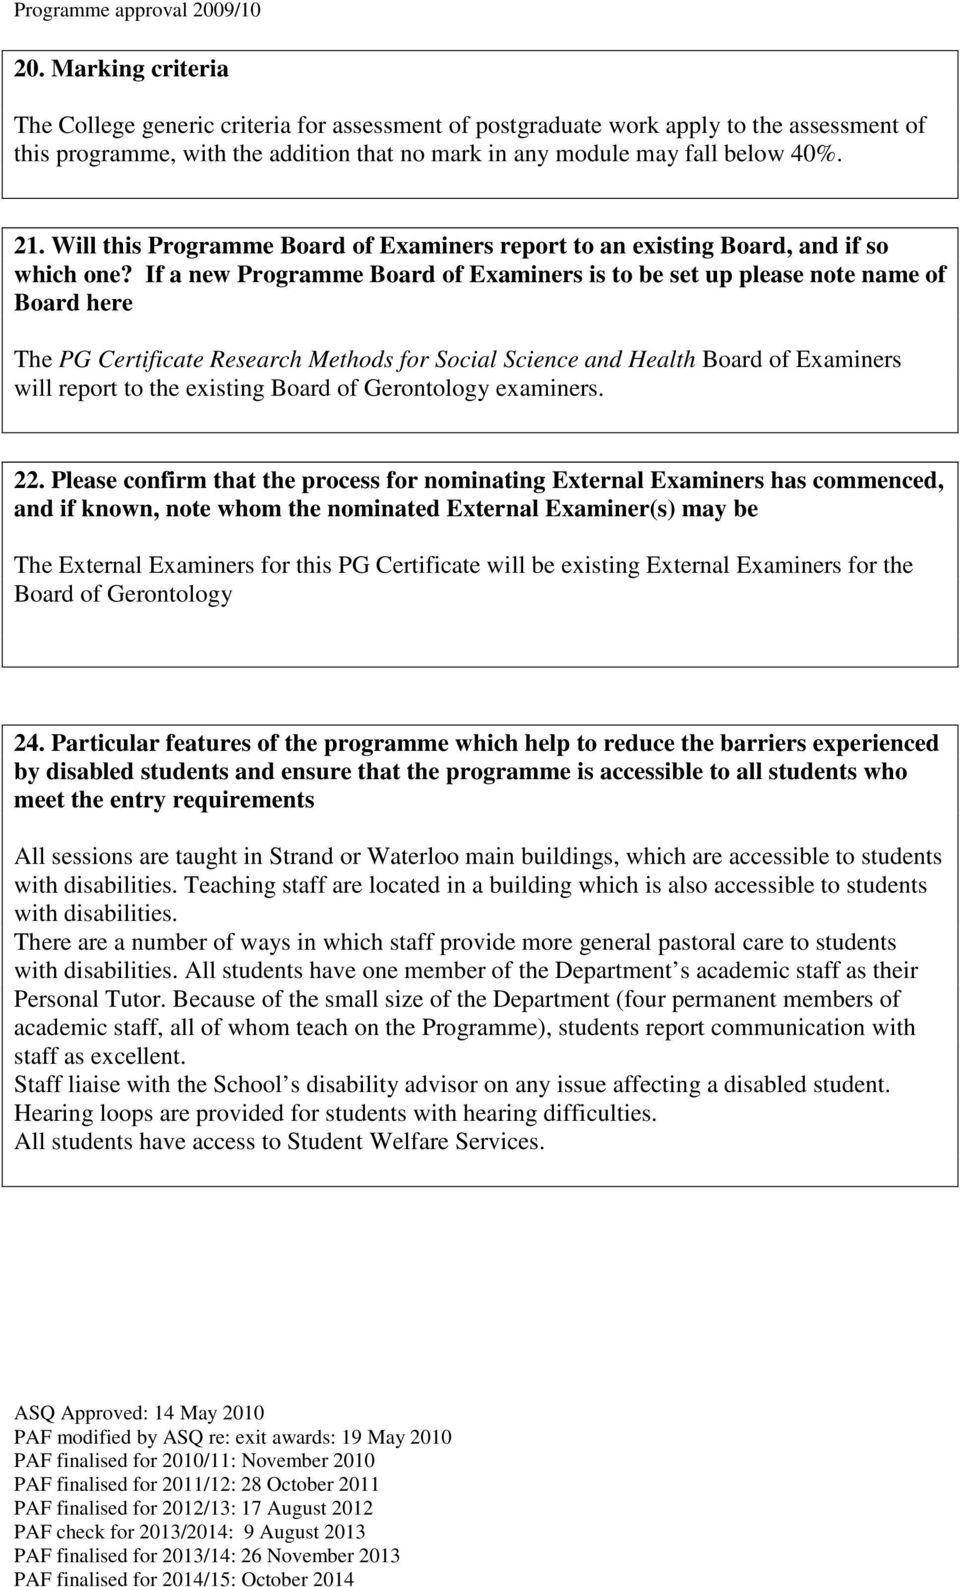 If a new Programme Board of Examiners is to be set up please note name of Board here The PG Certificate Research Methods for Social Science and Health Board of Examiners will report to the existing